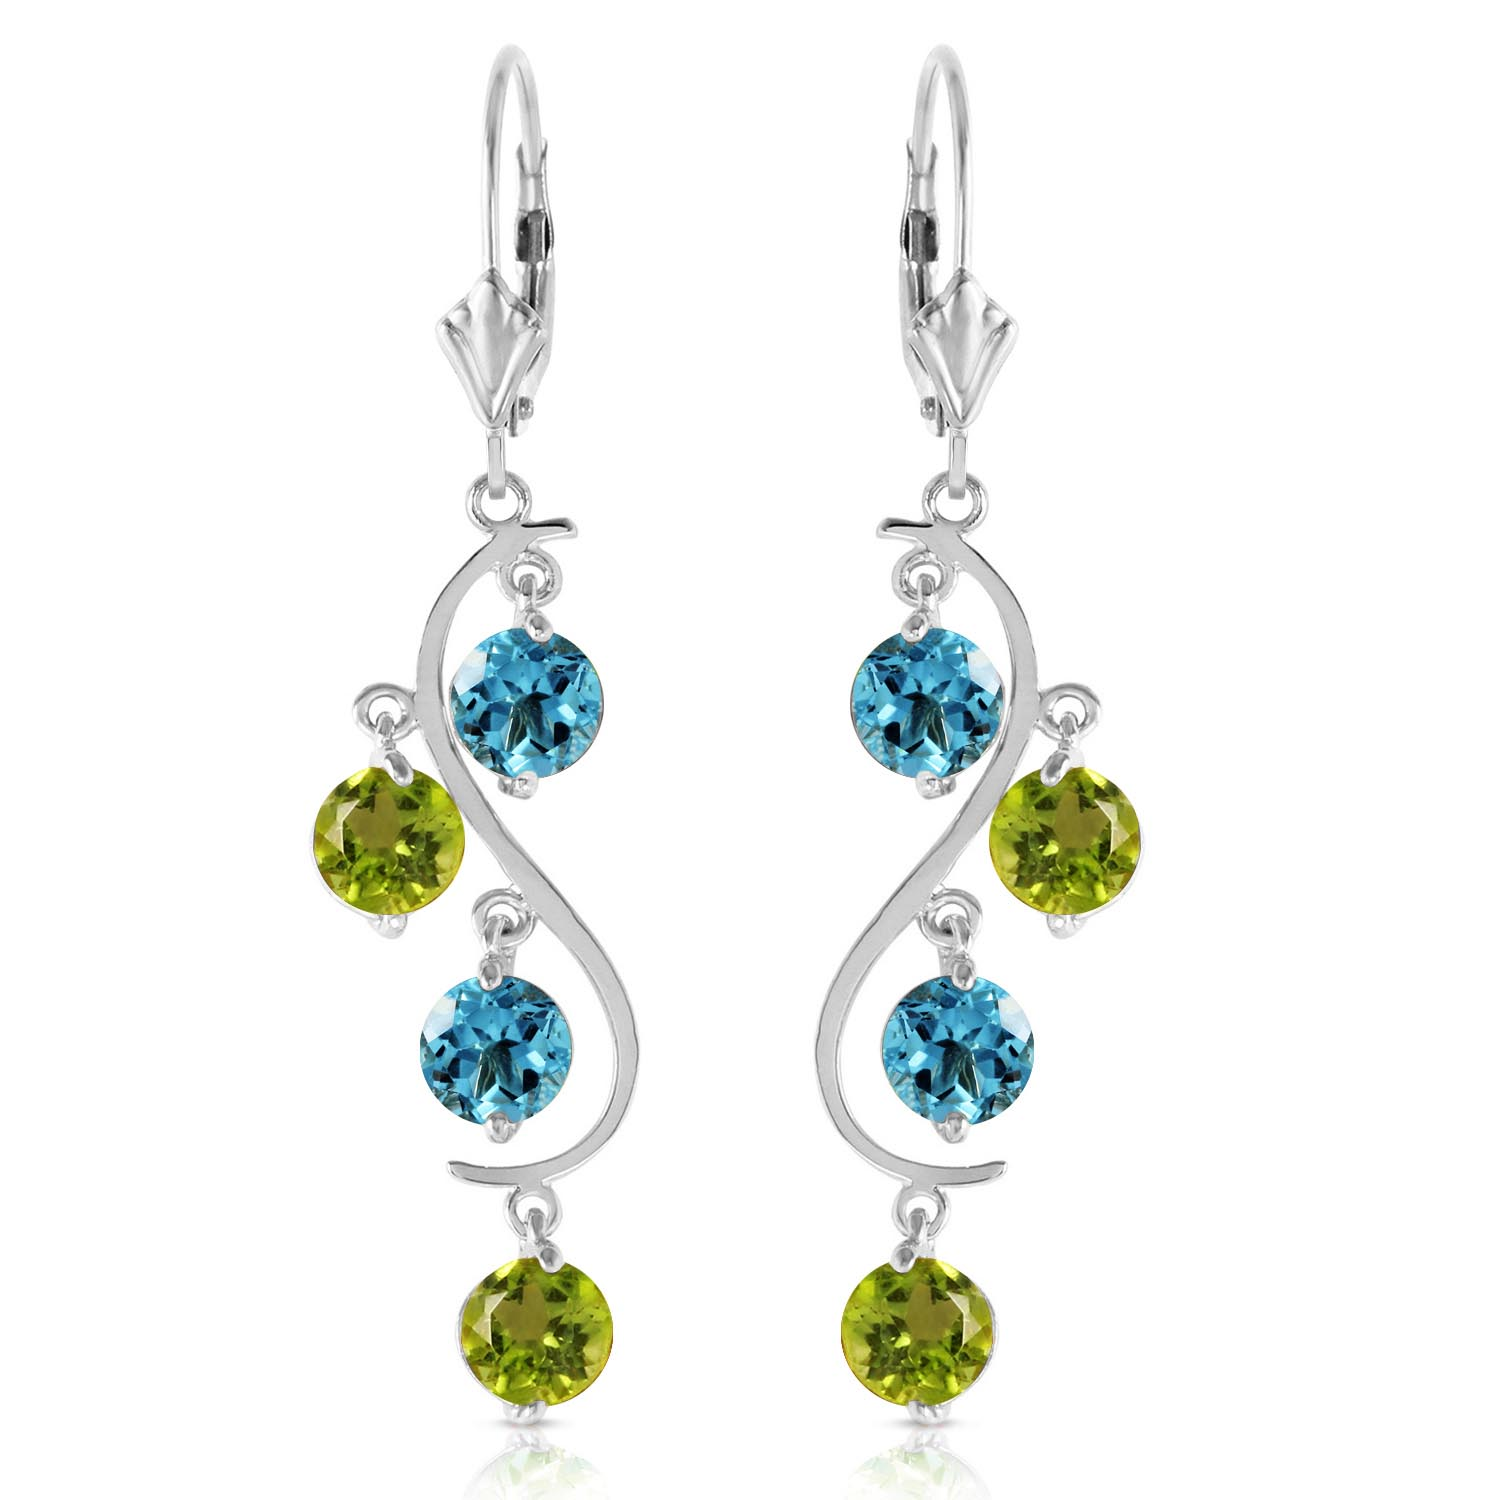 Blue Topaz and Peridot Dream Catcher Drop Earrings 4.94ctw in 9ct White Gold